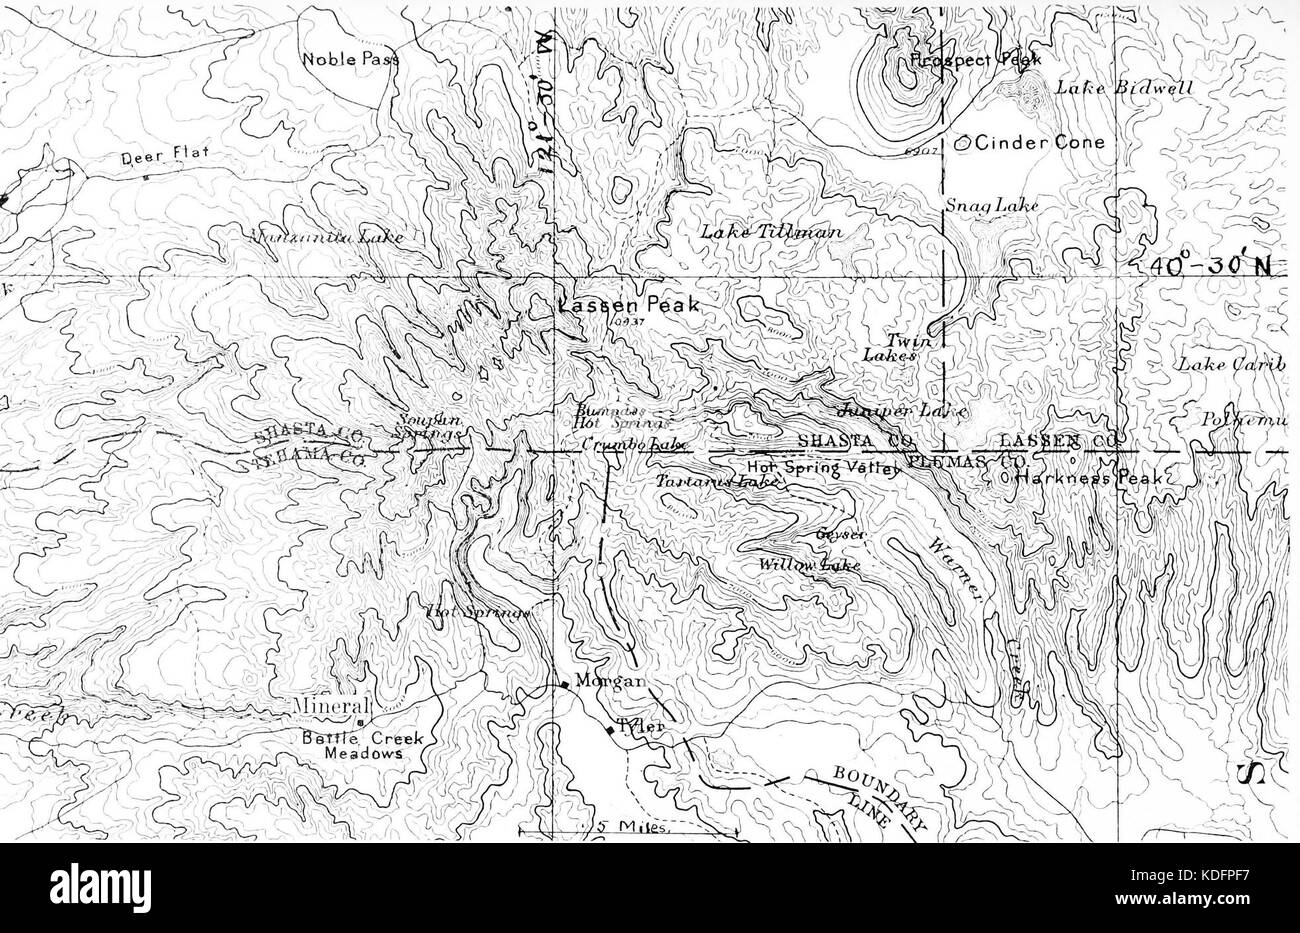 PSM V86 D295 The 1882 usgs survey of lassen peak and vicinity - Stock Image